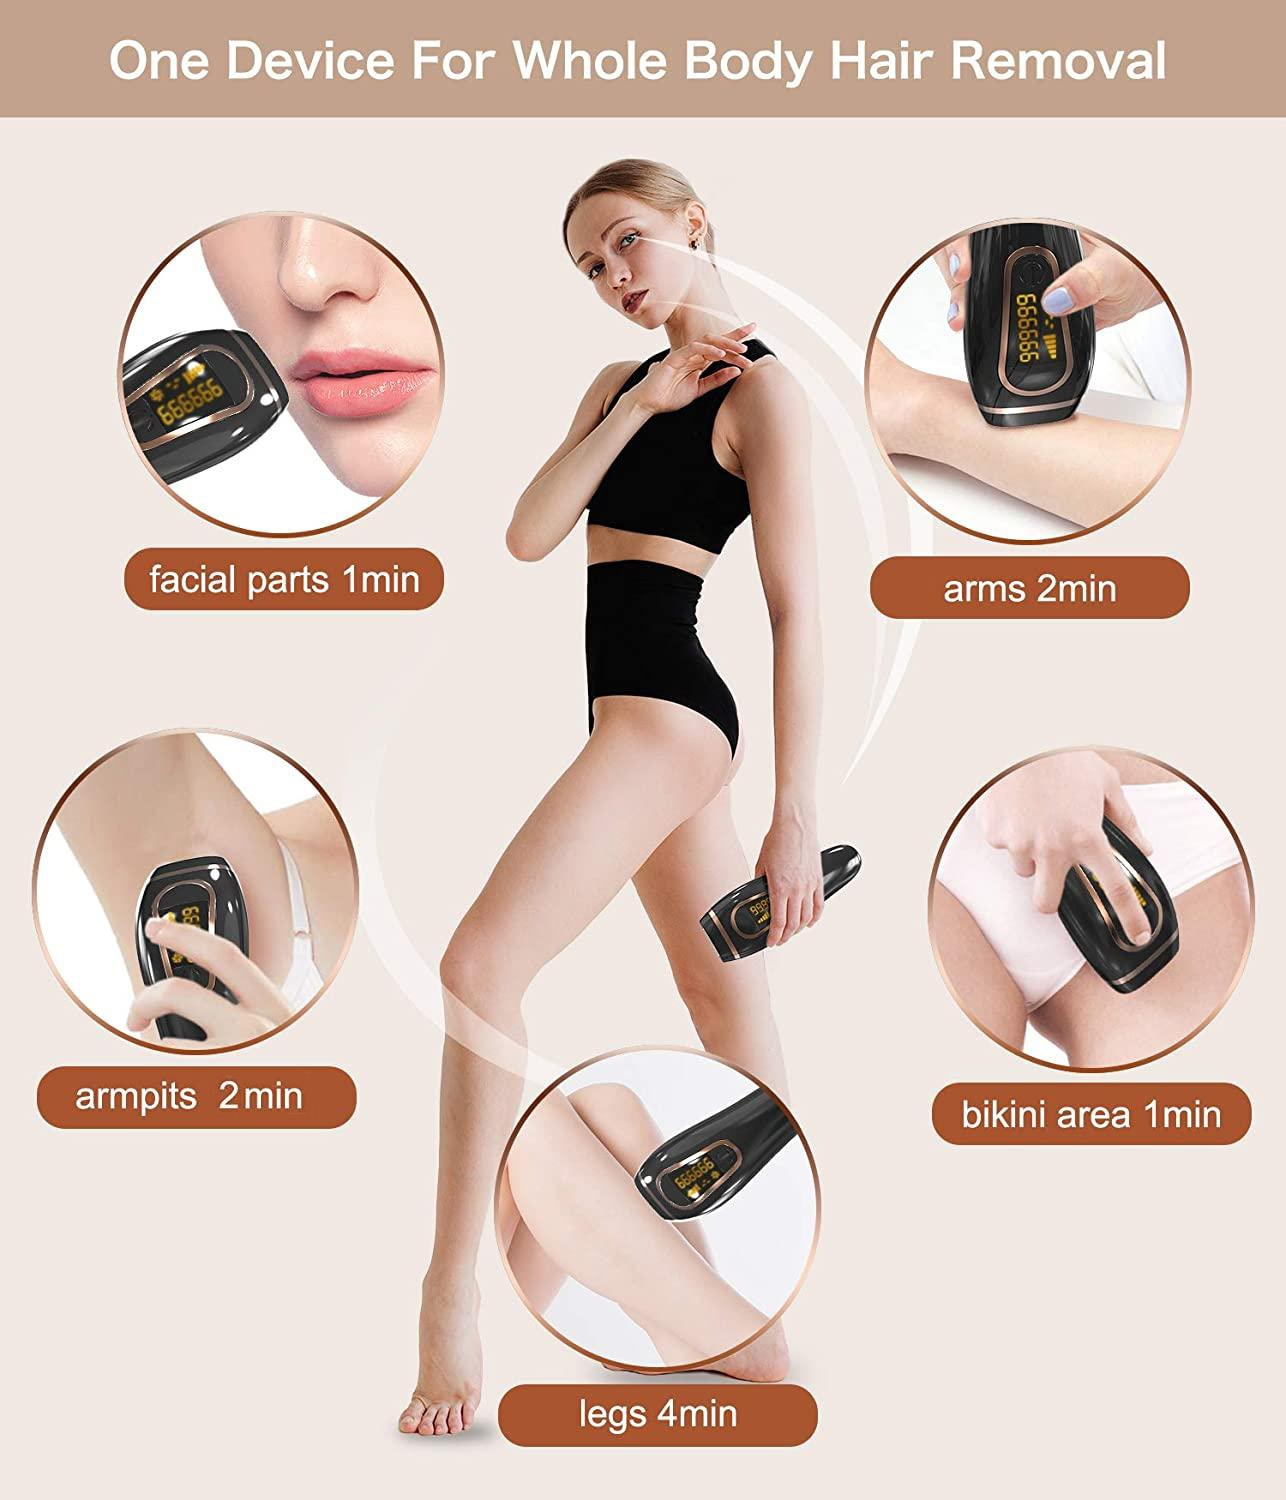 IPL Hair Removal for Women and Men Permanent Painless Laser Hair Removal System 999,999 Hair Remover Treatment for Whole Body enlarge